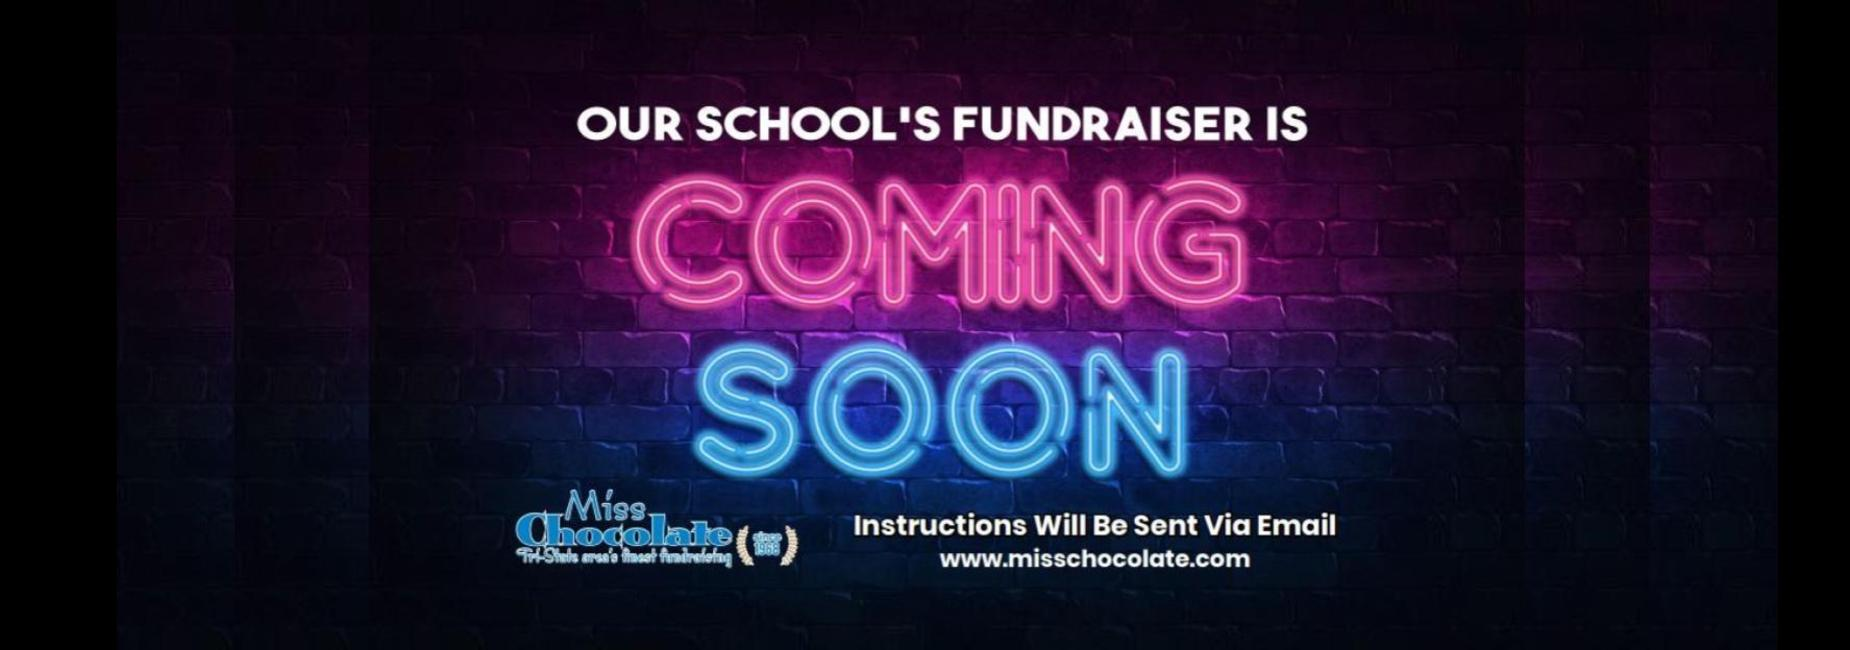 Our school's fundraiser is coming soon. Miss Chocolate 2021. Instructions will be sent via email. www.misschocolate.com